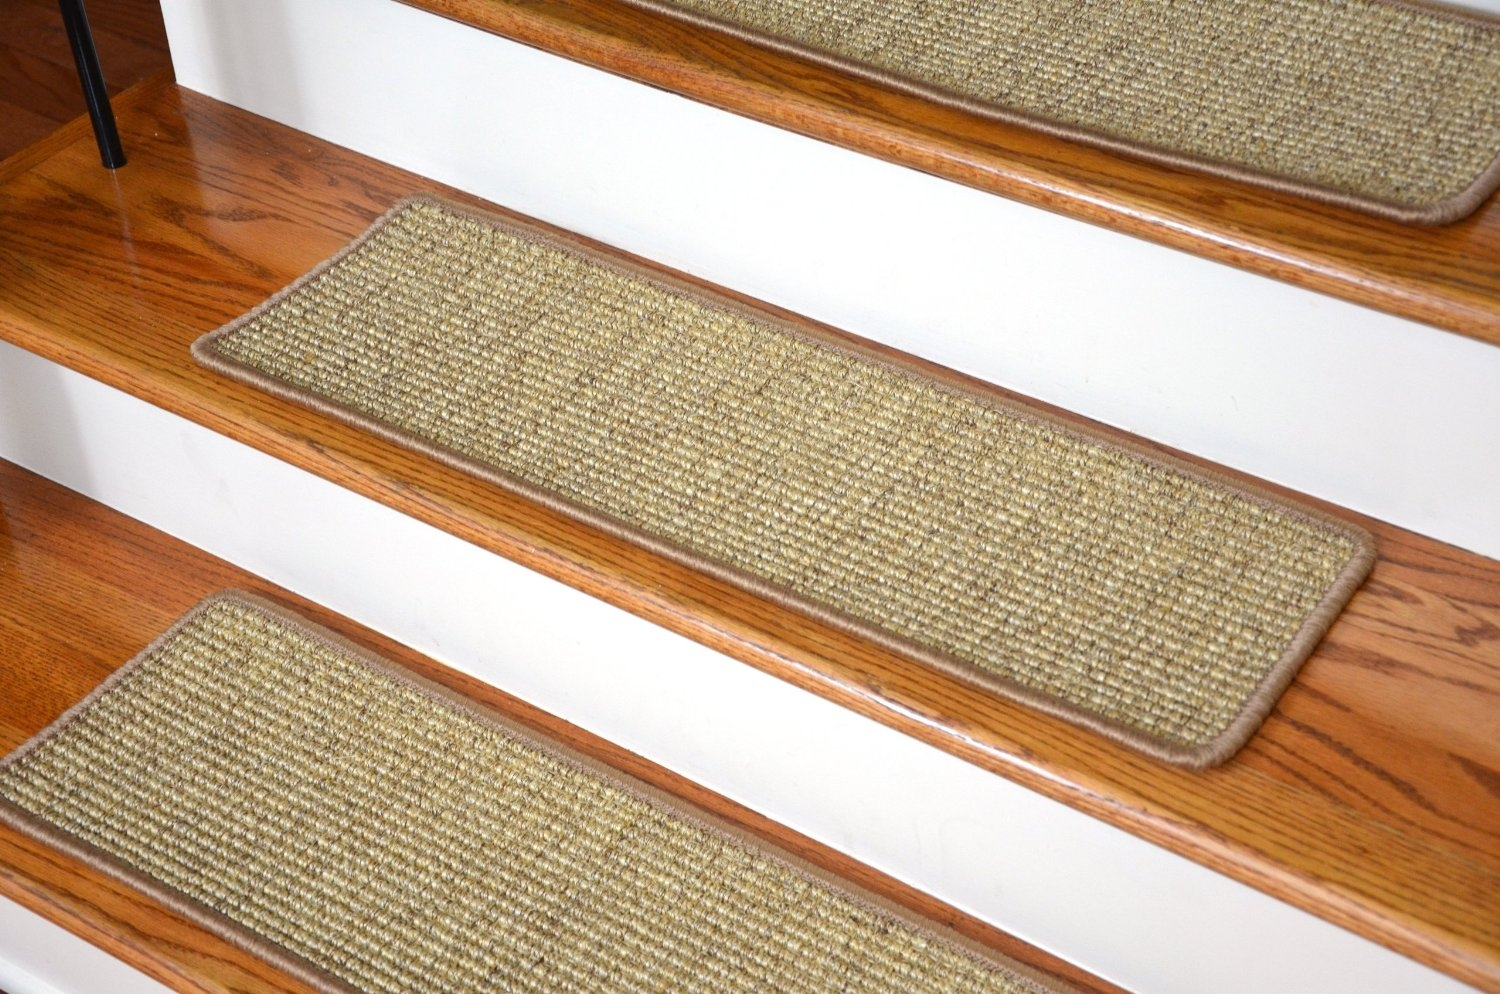 Flooring Pretty Stair Treads Carpet For Stair Decoration Idea Pertaining To Stair Tread Carpet Covers (#8 of 20)